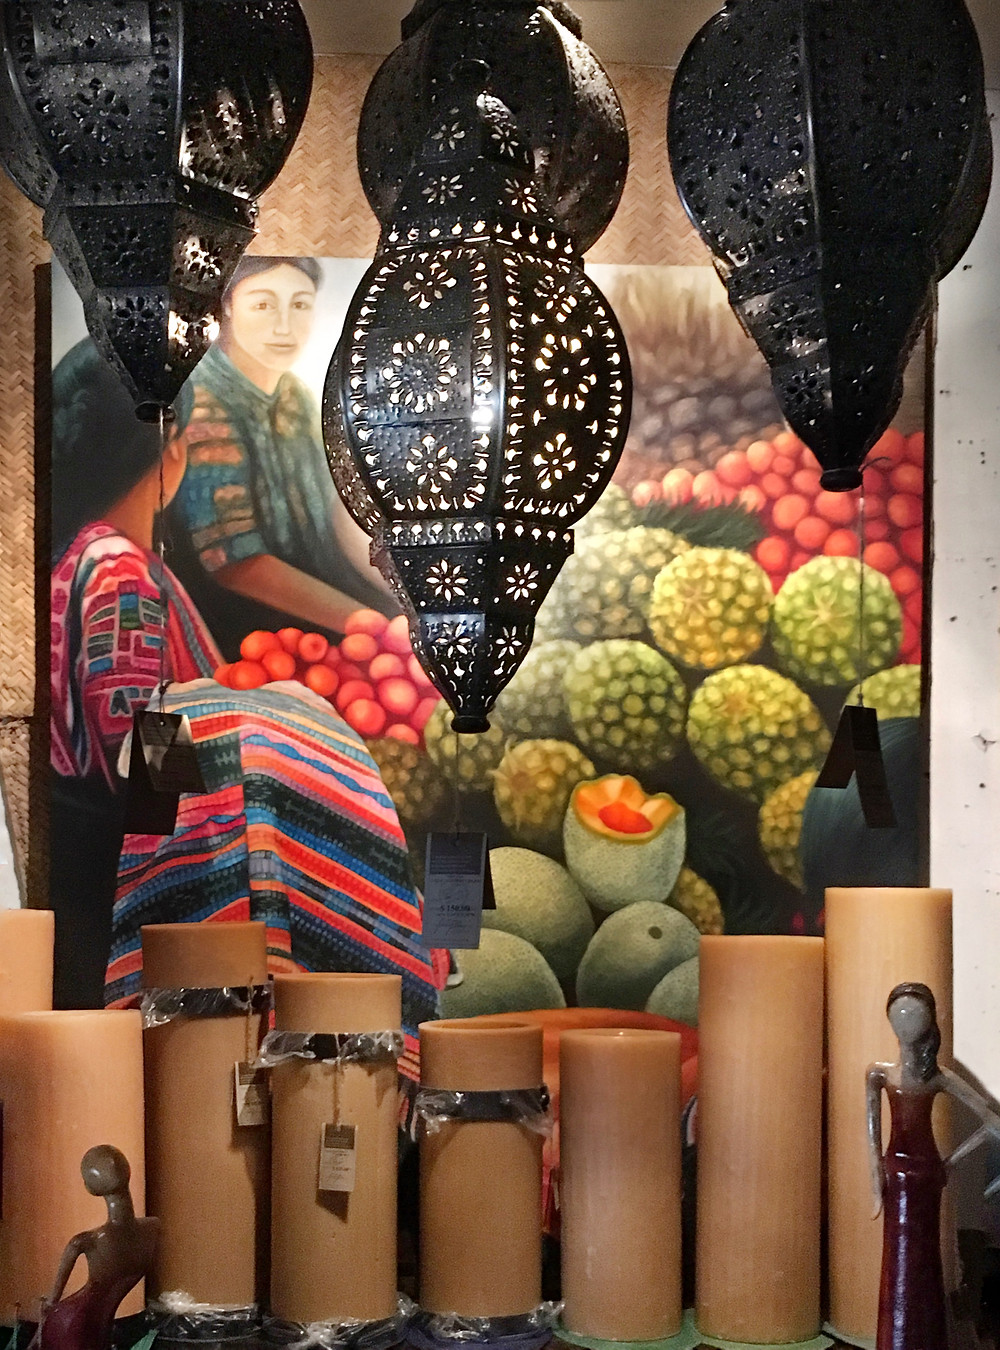 Mexican Lanterns and Vibrant Wall Art